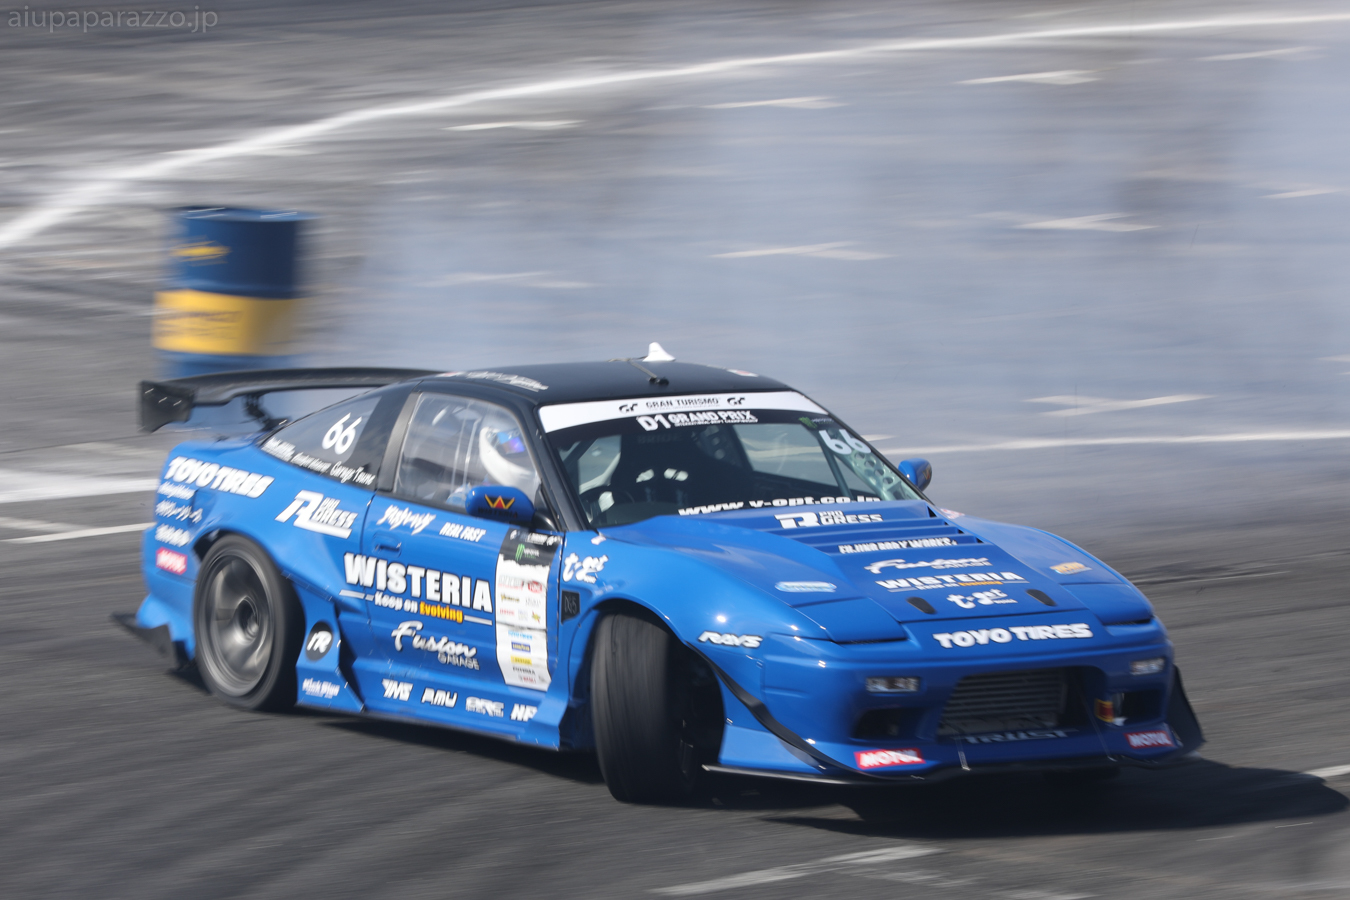 d1gp_tan2016lap3-4.jpg